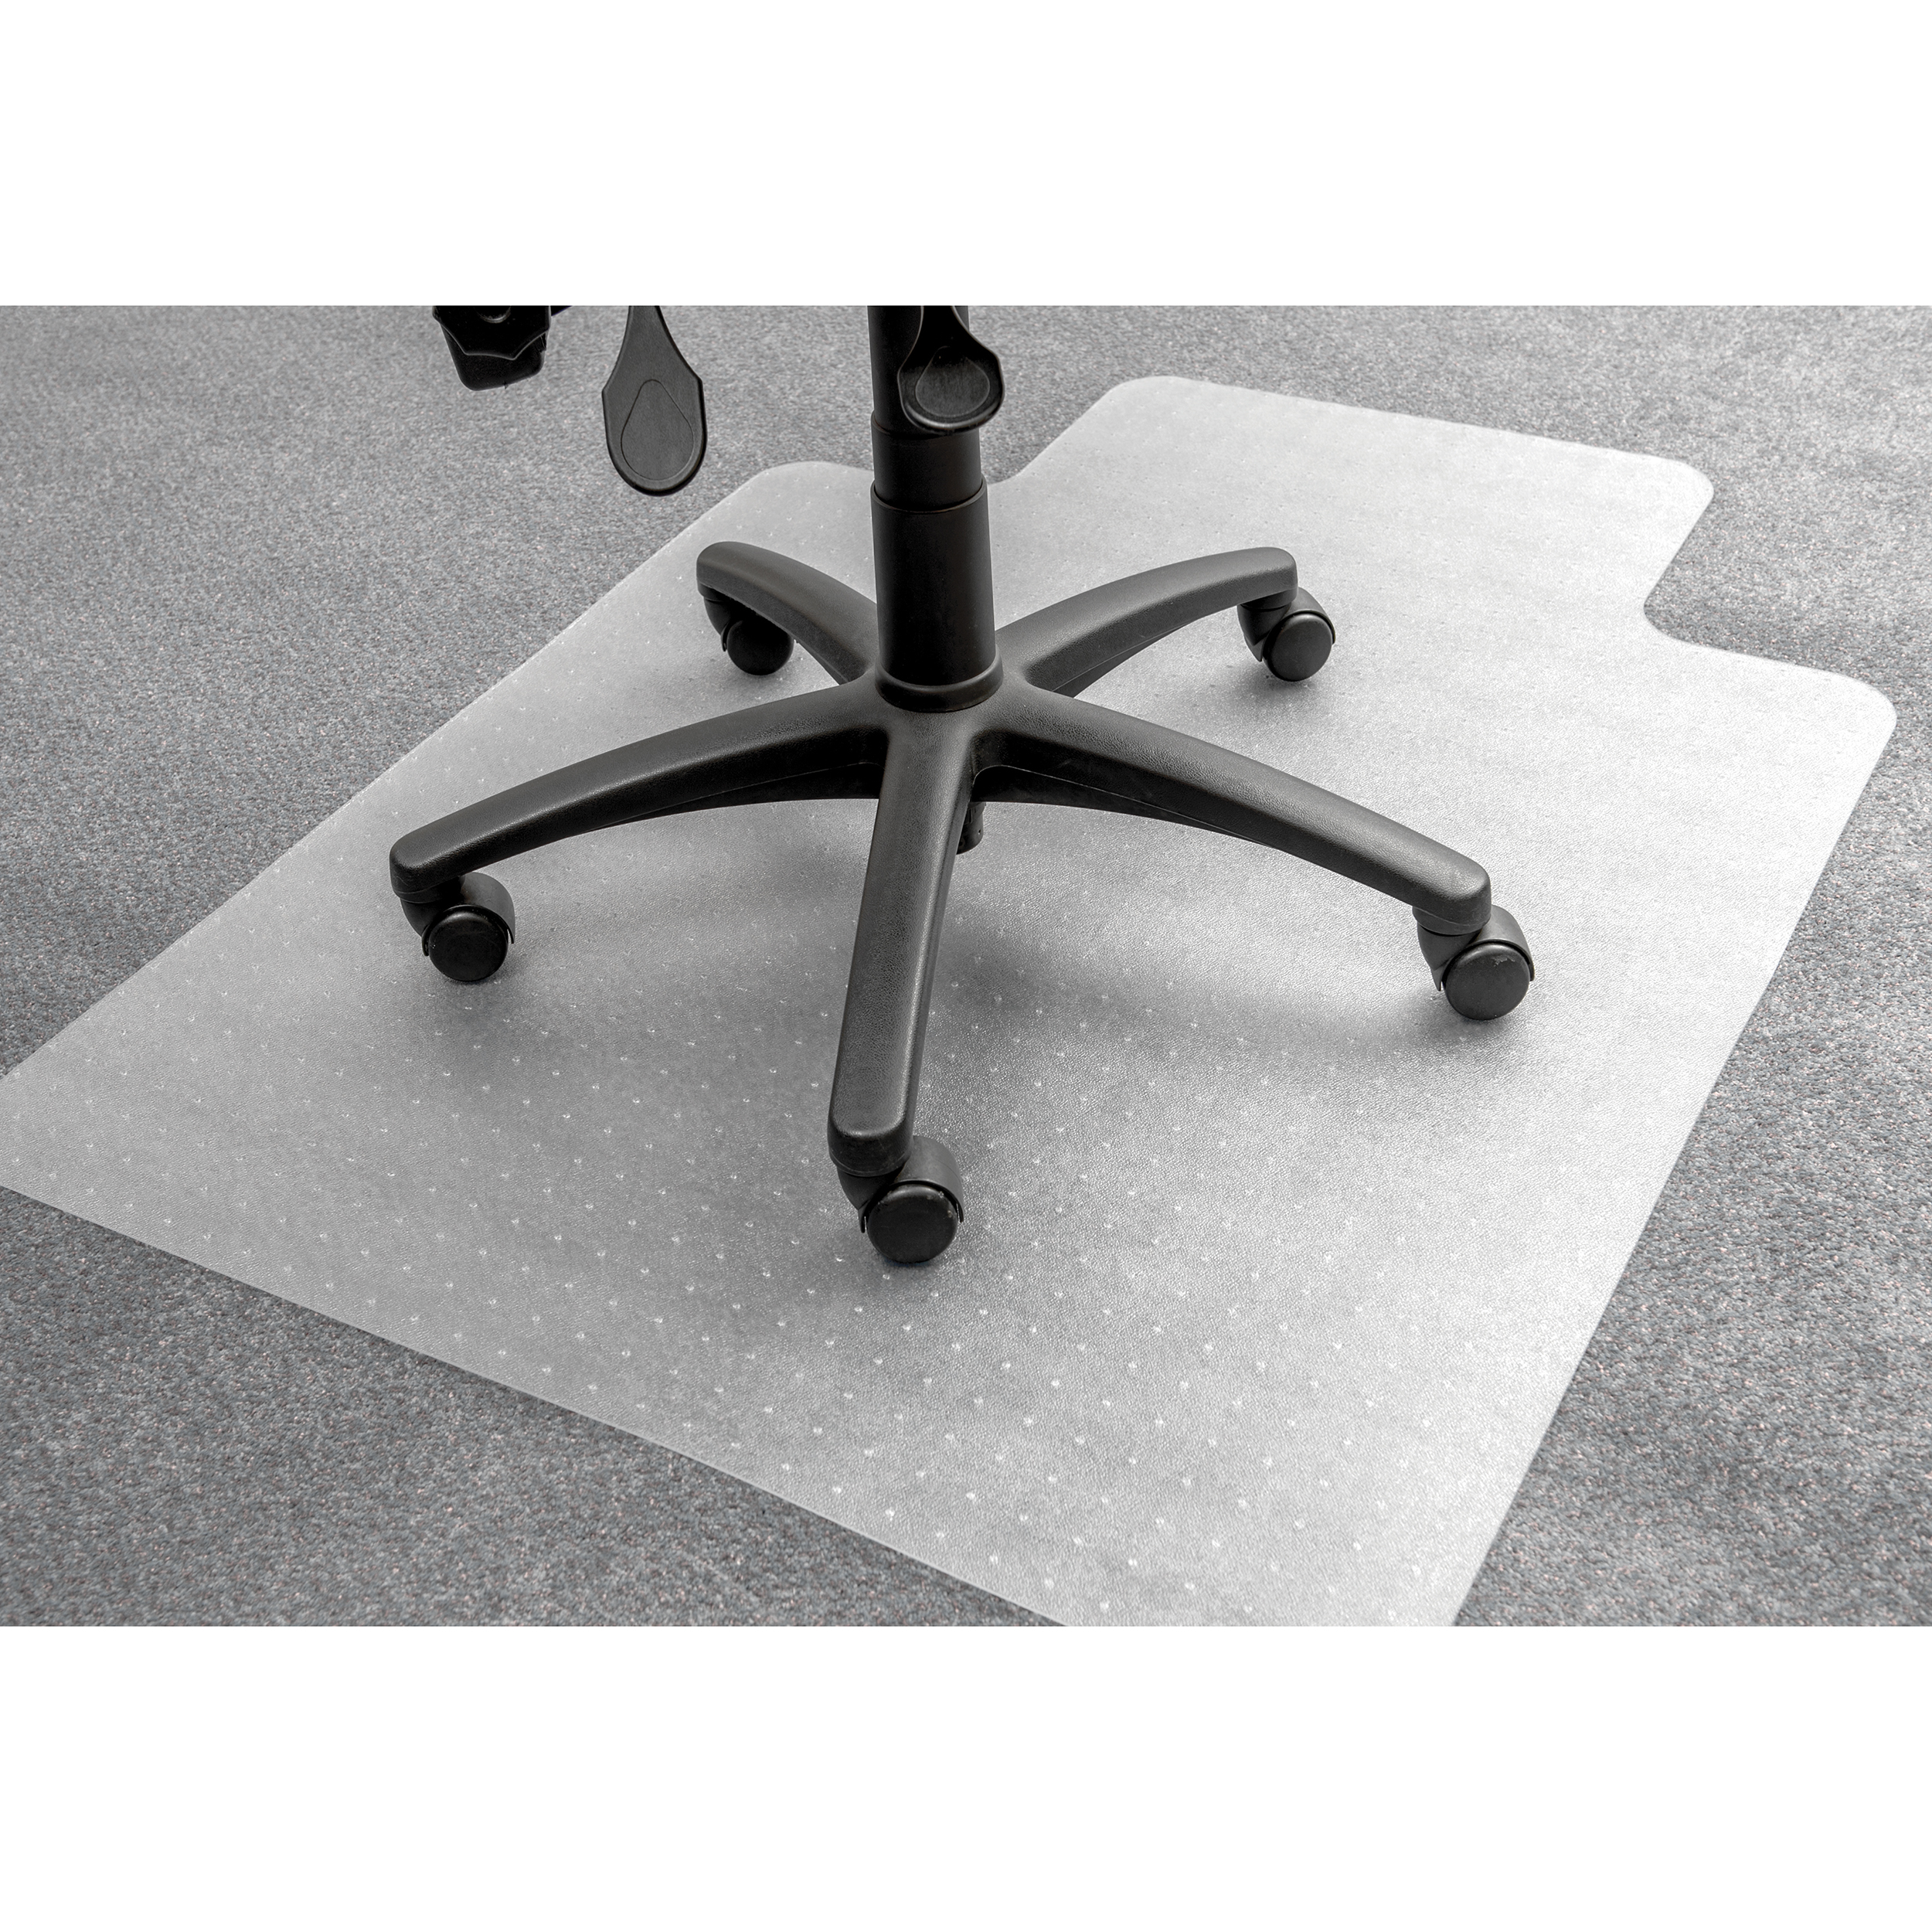 5 Star Office Chair Mat Carpet Protection PVC W900xD1200mm Clear/Transparent